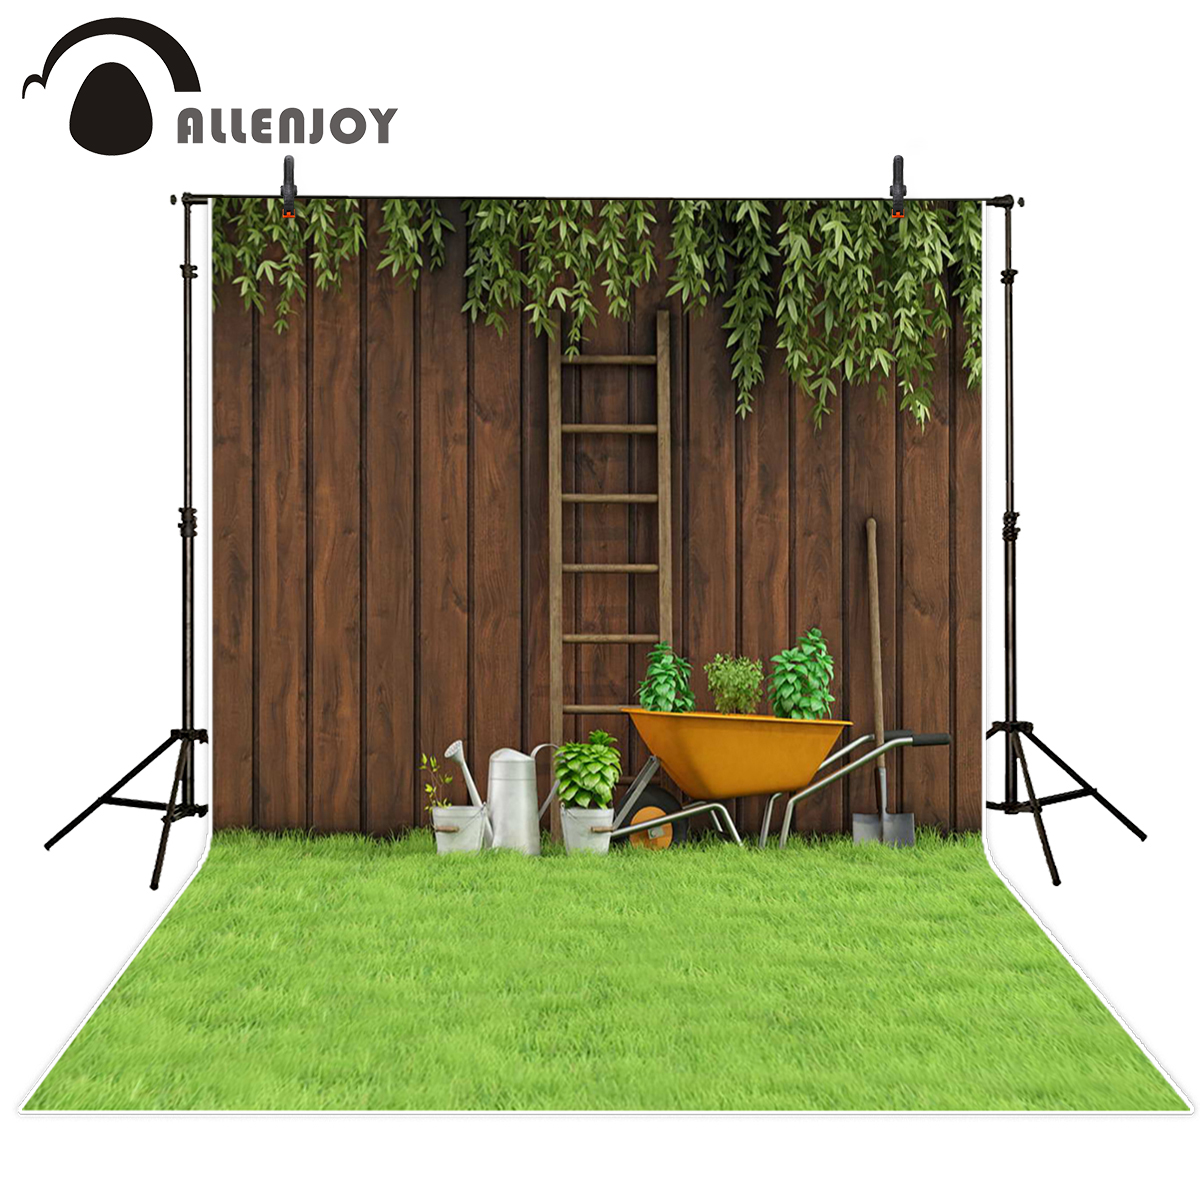 Allenjoy photo background backyard grass board tools backdrops for photo studio photographer headboard natural scenery backdrop кабель витая пара panduit u utp cat 6 lszh 305 м